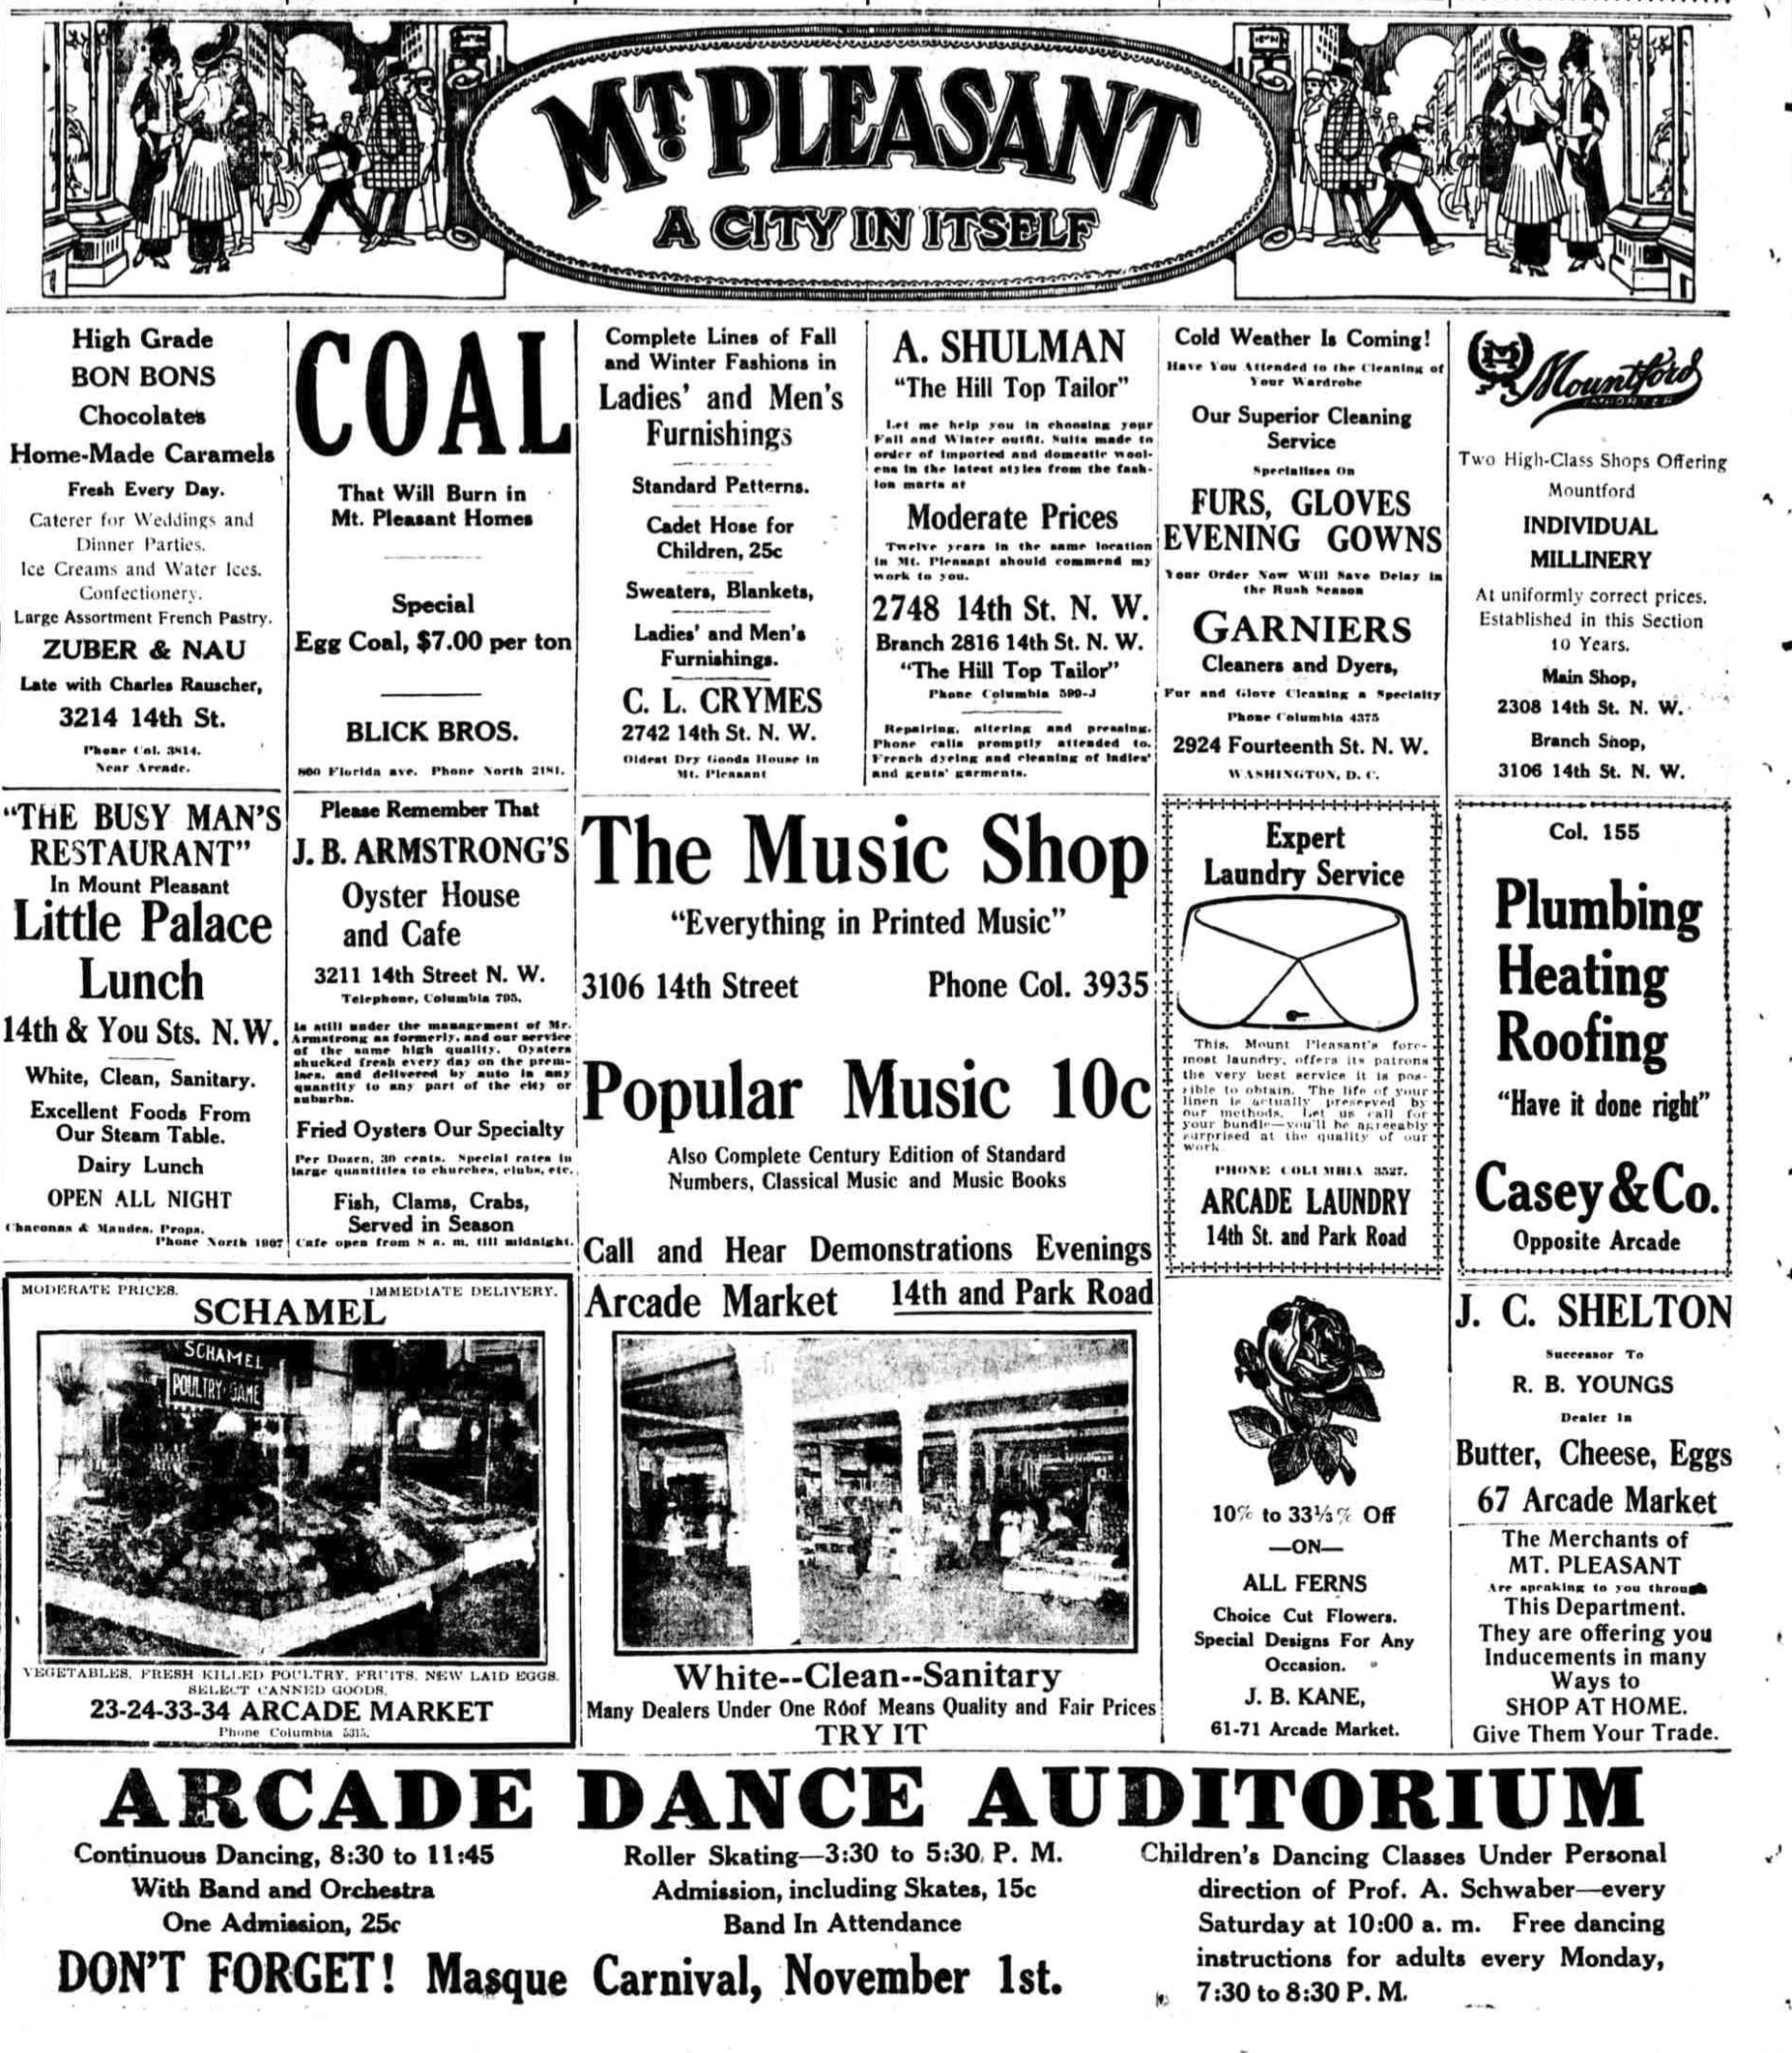 Mt. Pleasant advertisement in 1915